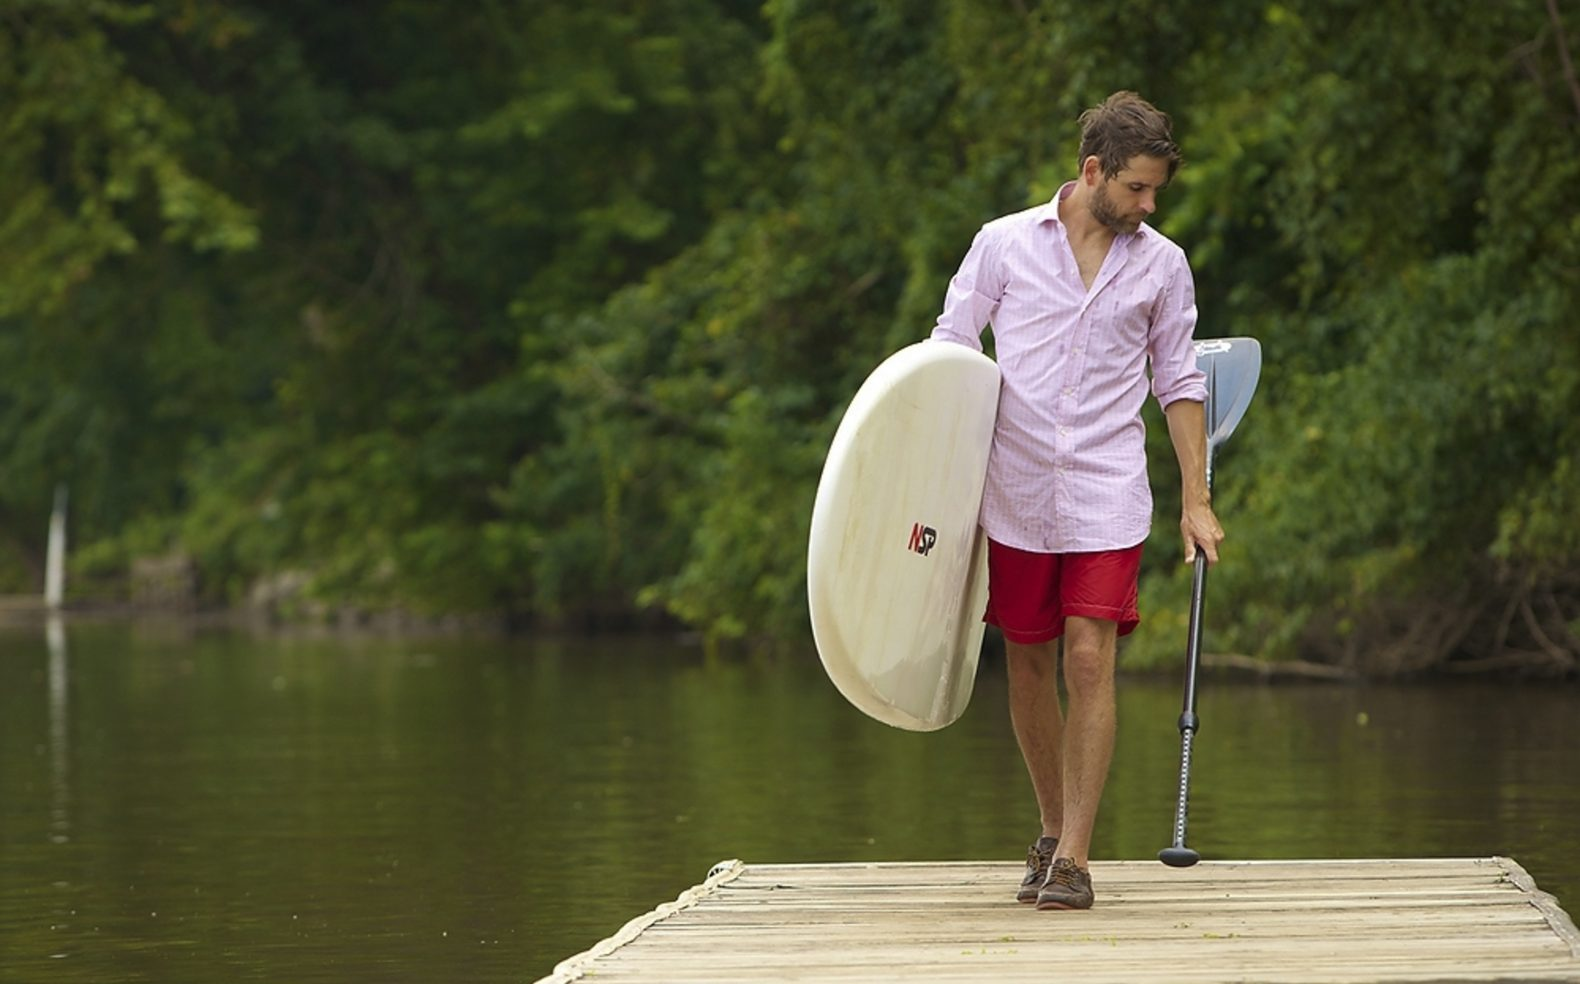 A man in a collard shirt and board shorts walks on a dock looking at the ore in his left hand and holding a paddle board in his other arm.